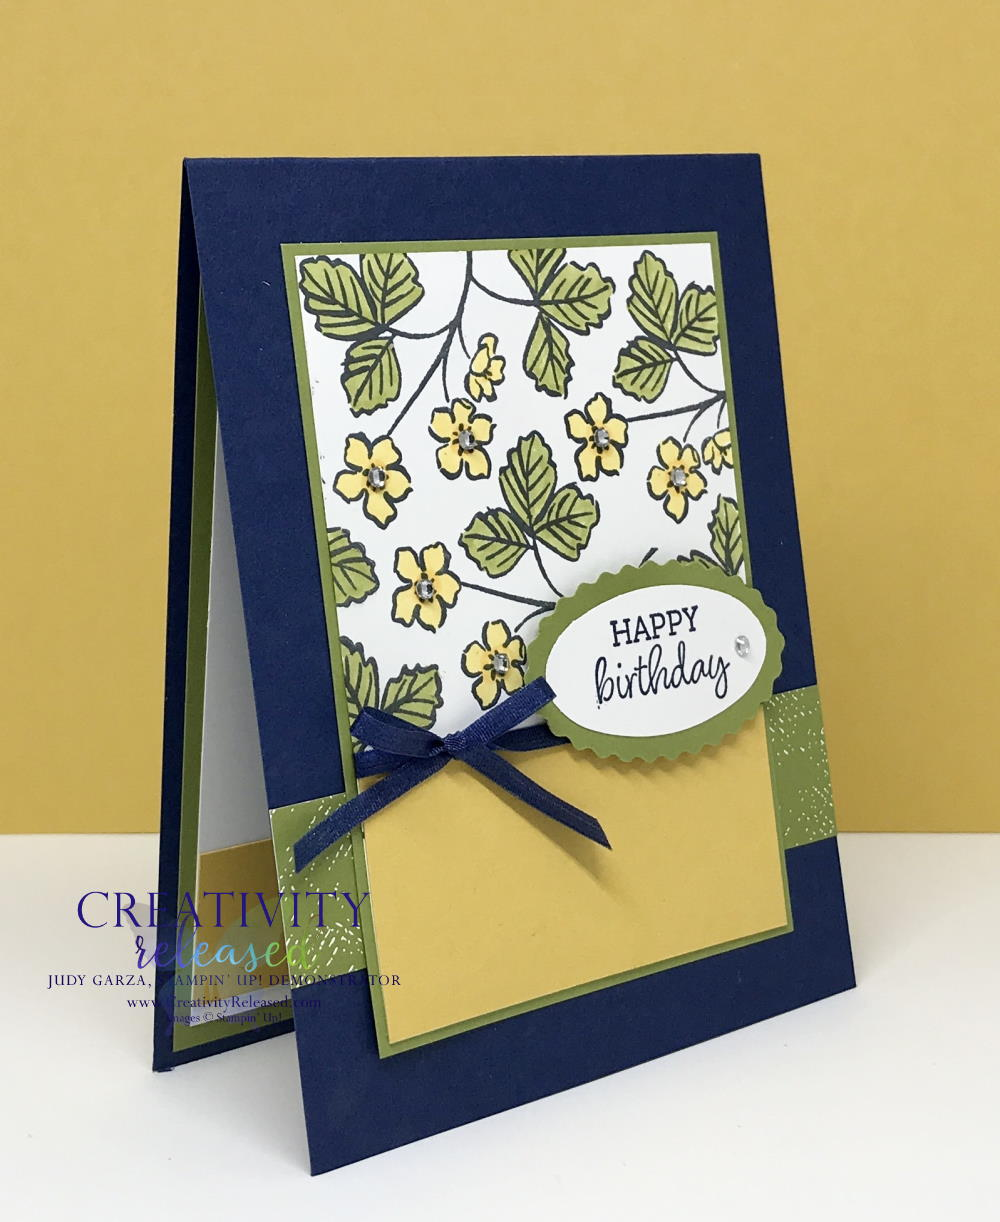 A side view of a birthday card showing the product coordination of Stampin' Up! Products on a birthday card in Night of Navy, Bumble Bee and Old Olive.